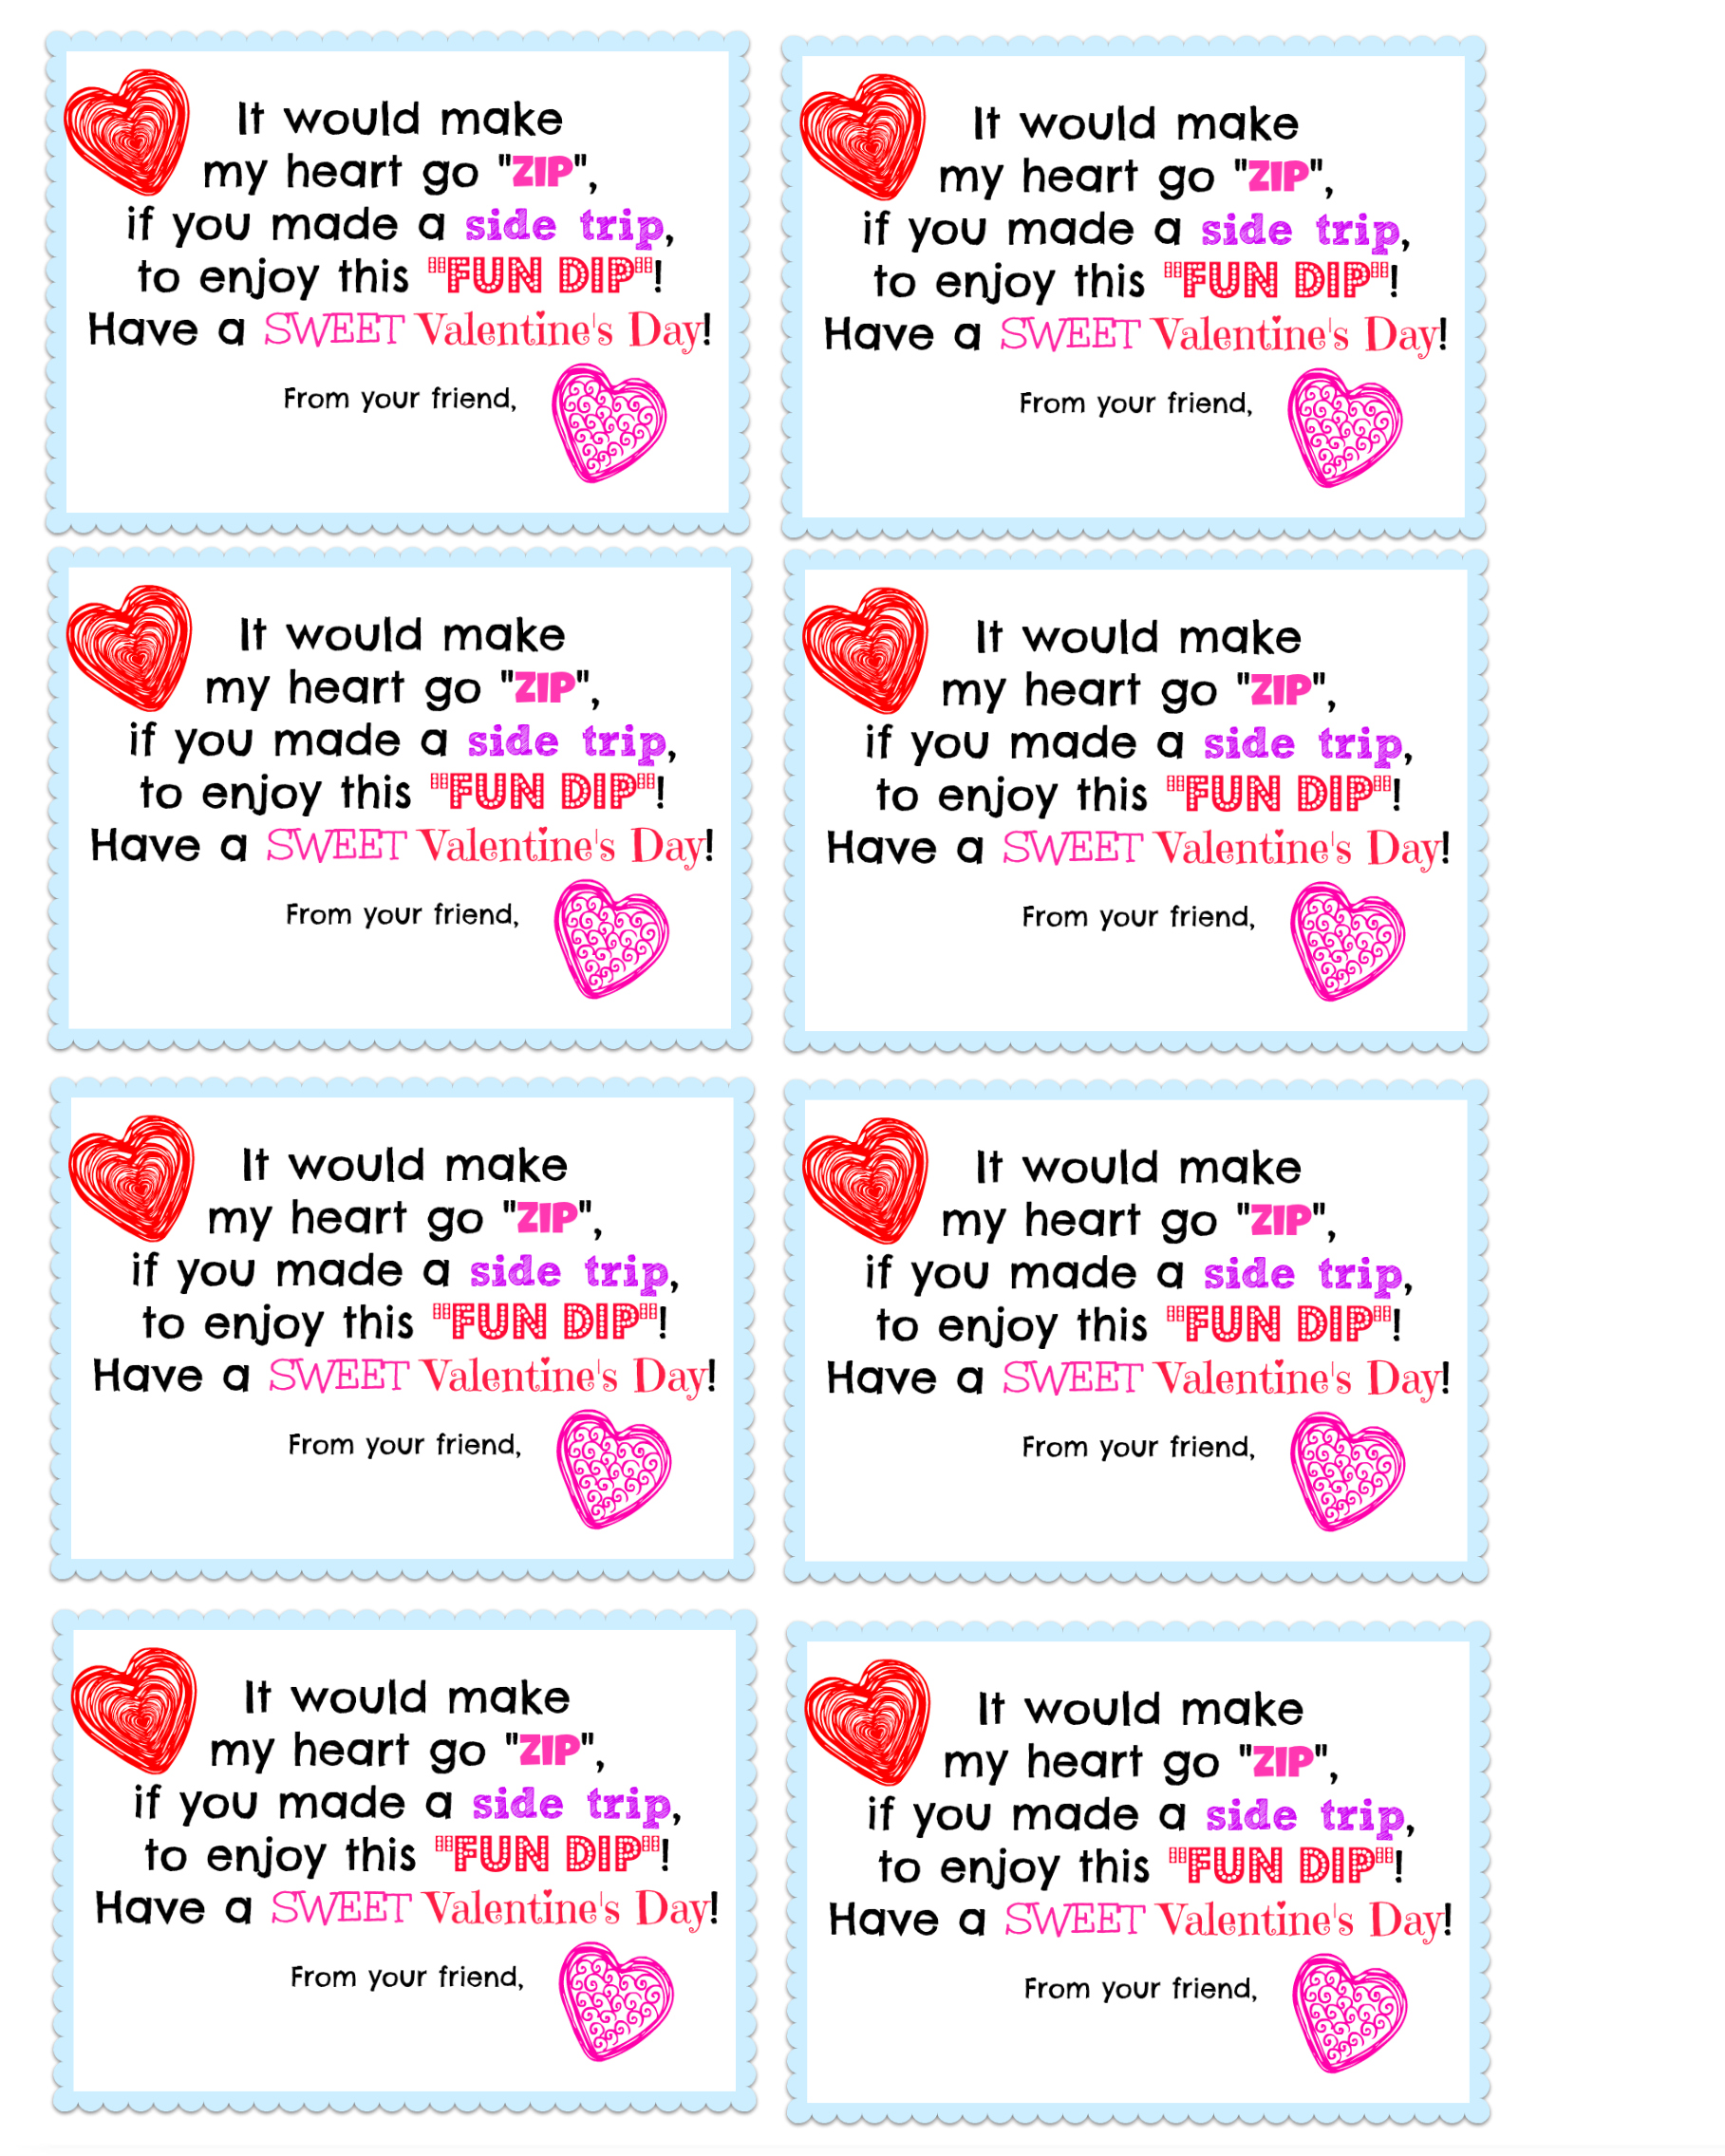 Valentine Printable Images Gallery Category Page 1